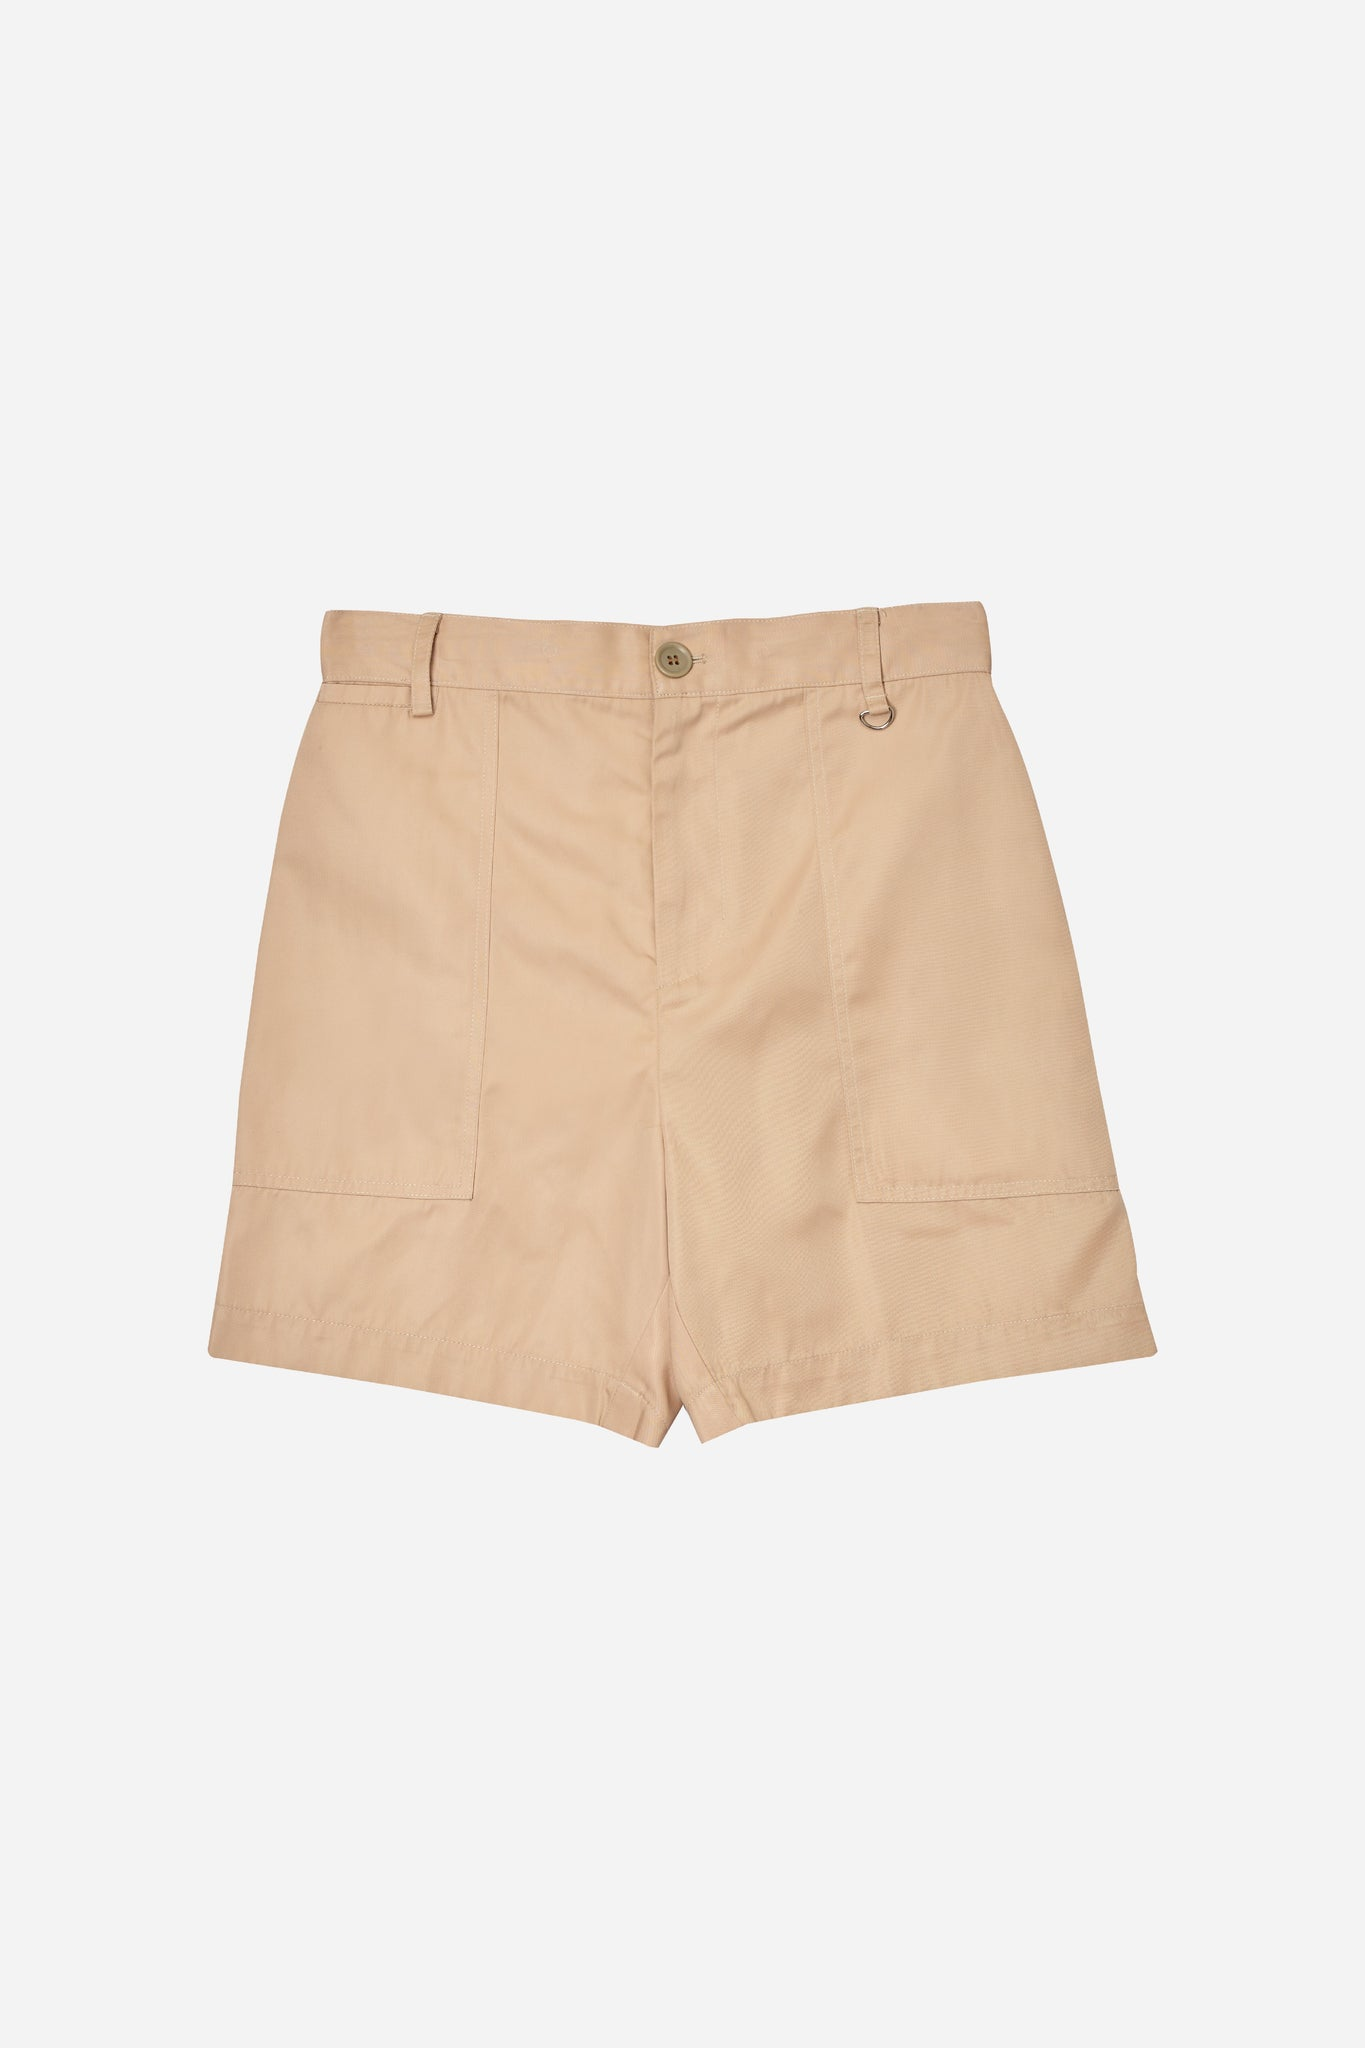 Load image into Gallery viewer, TENCEL SHORTS  WITH LOGO EMBROIDED (S20MD05023BE1A)